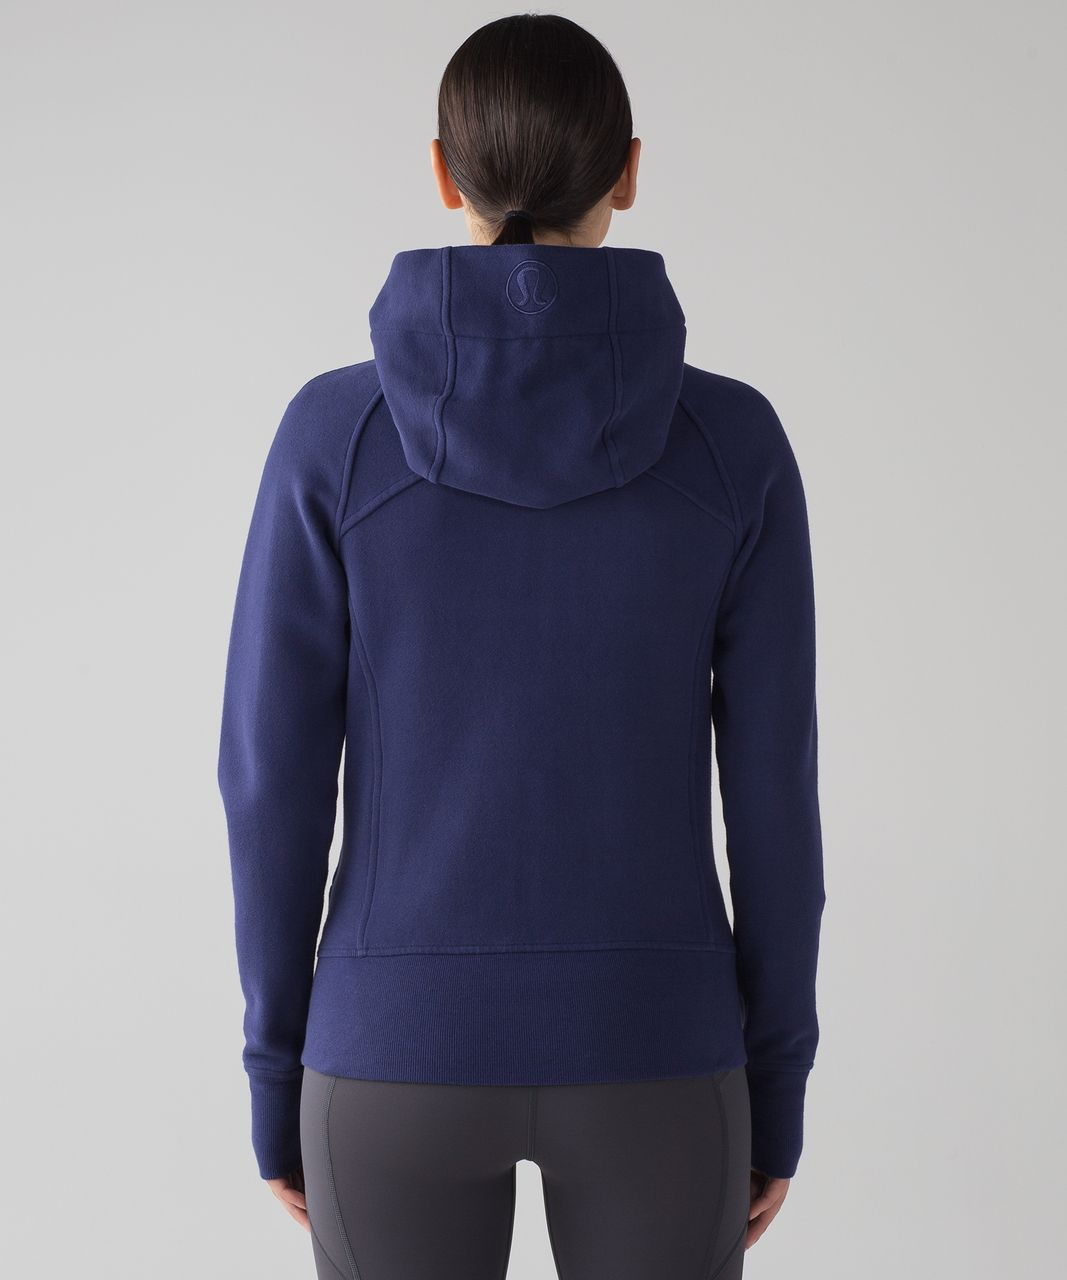 Lululemon Scuba Hoodie *Light Cotton Fleece - Blueberry Jam